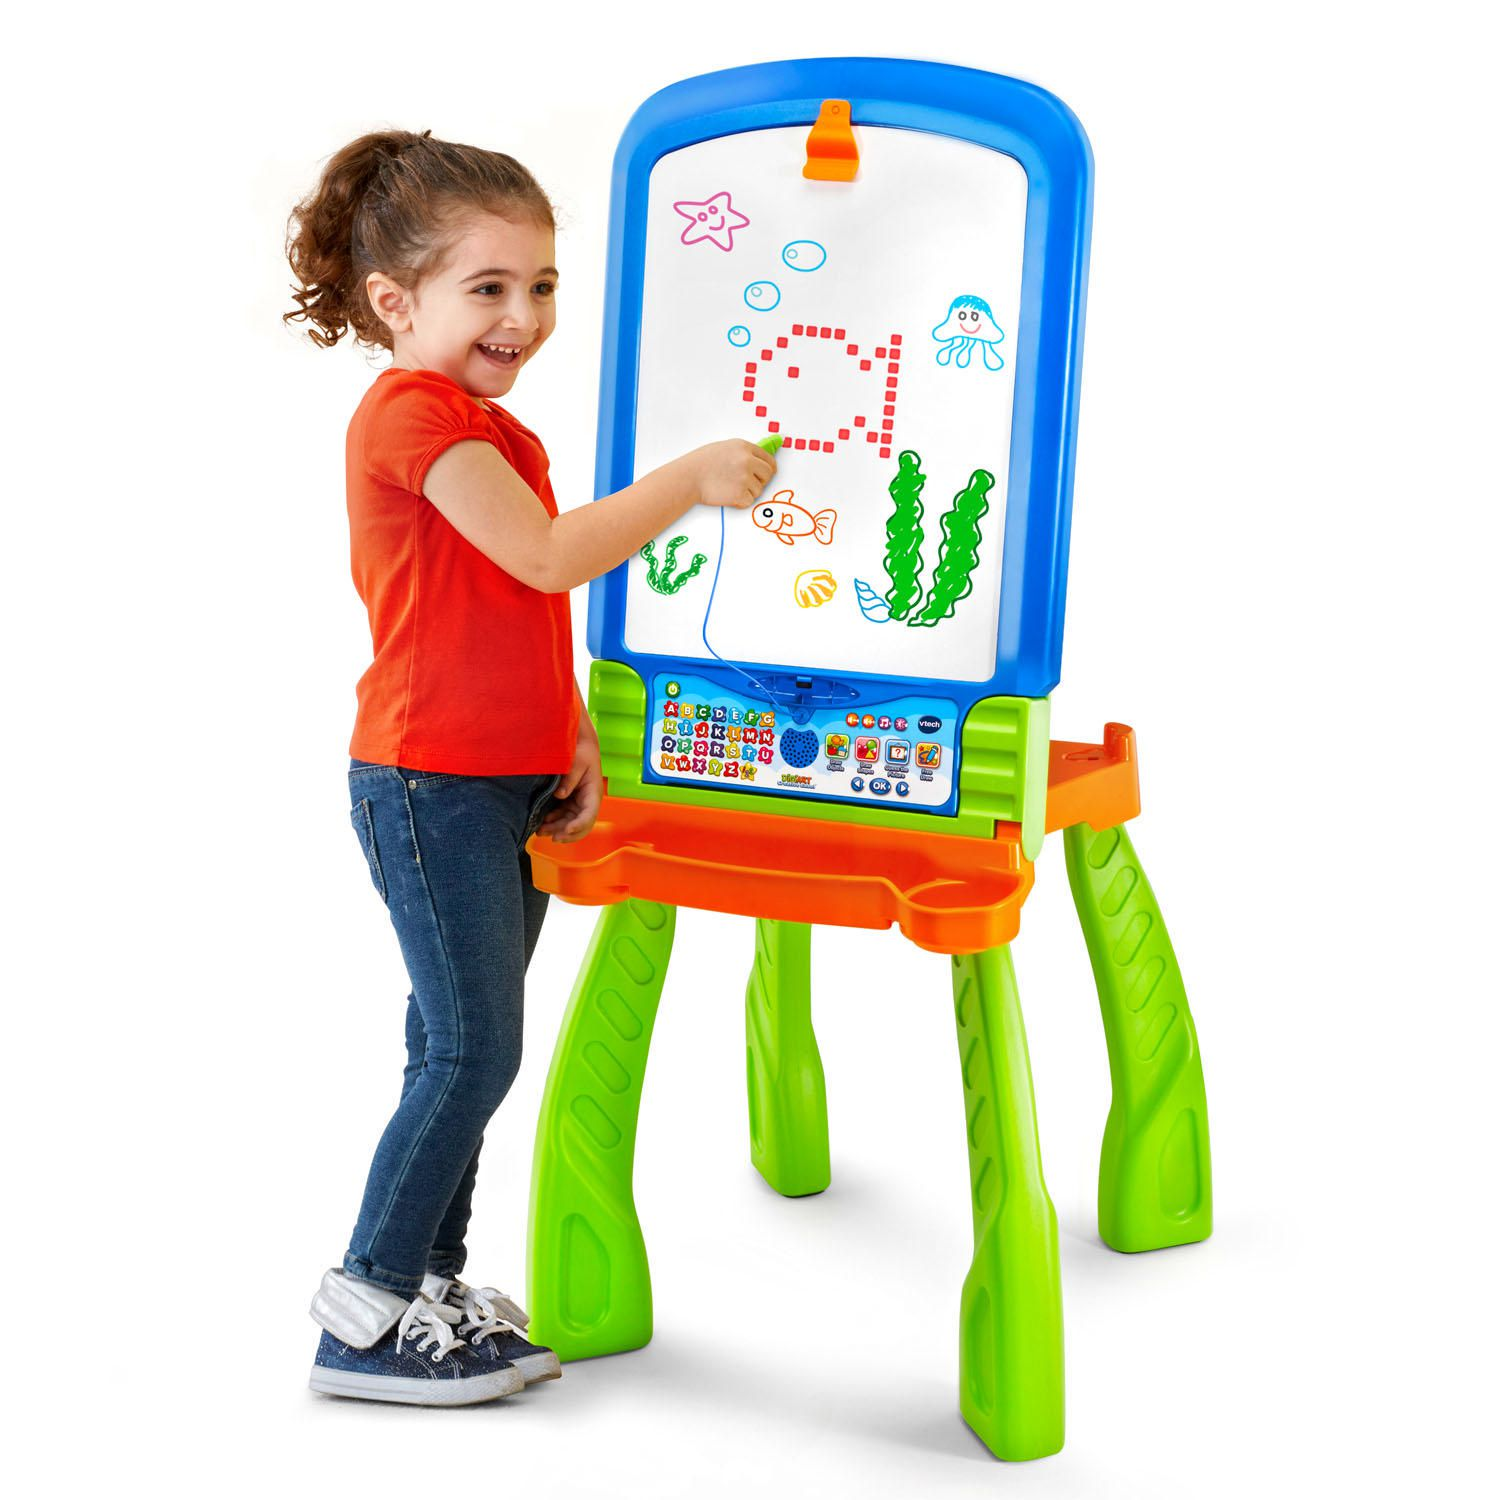 vtech digiart creative easel interactive learning toy english